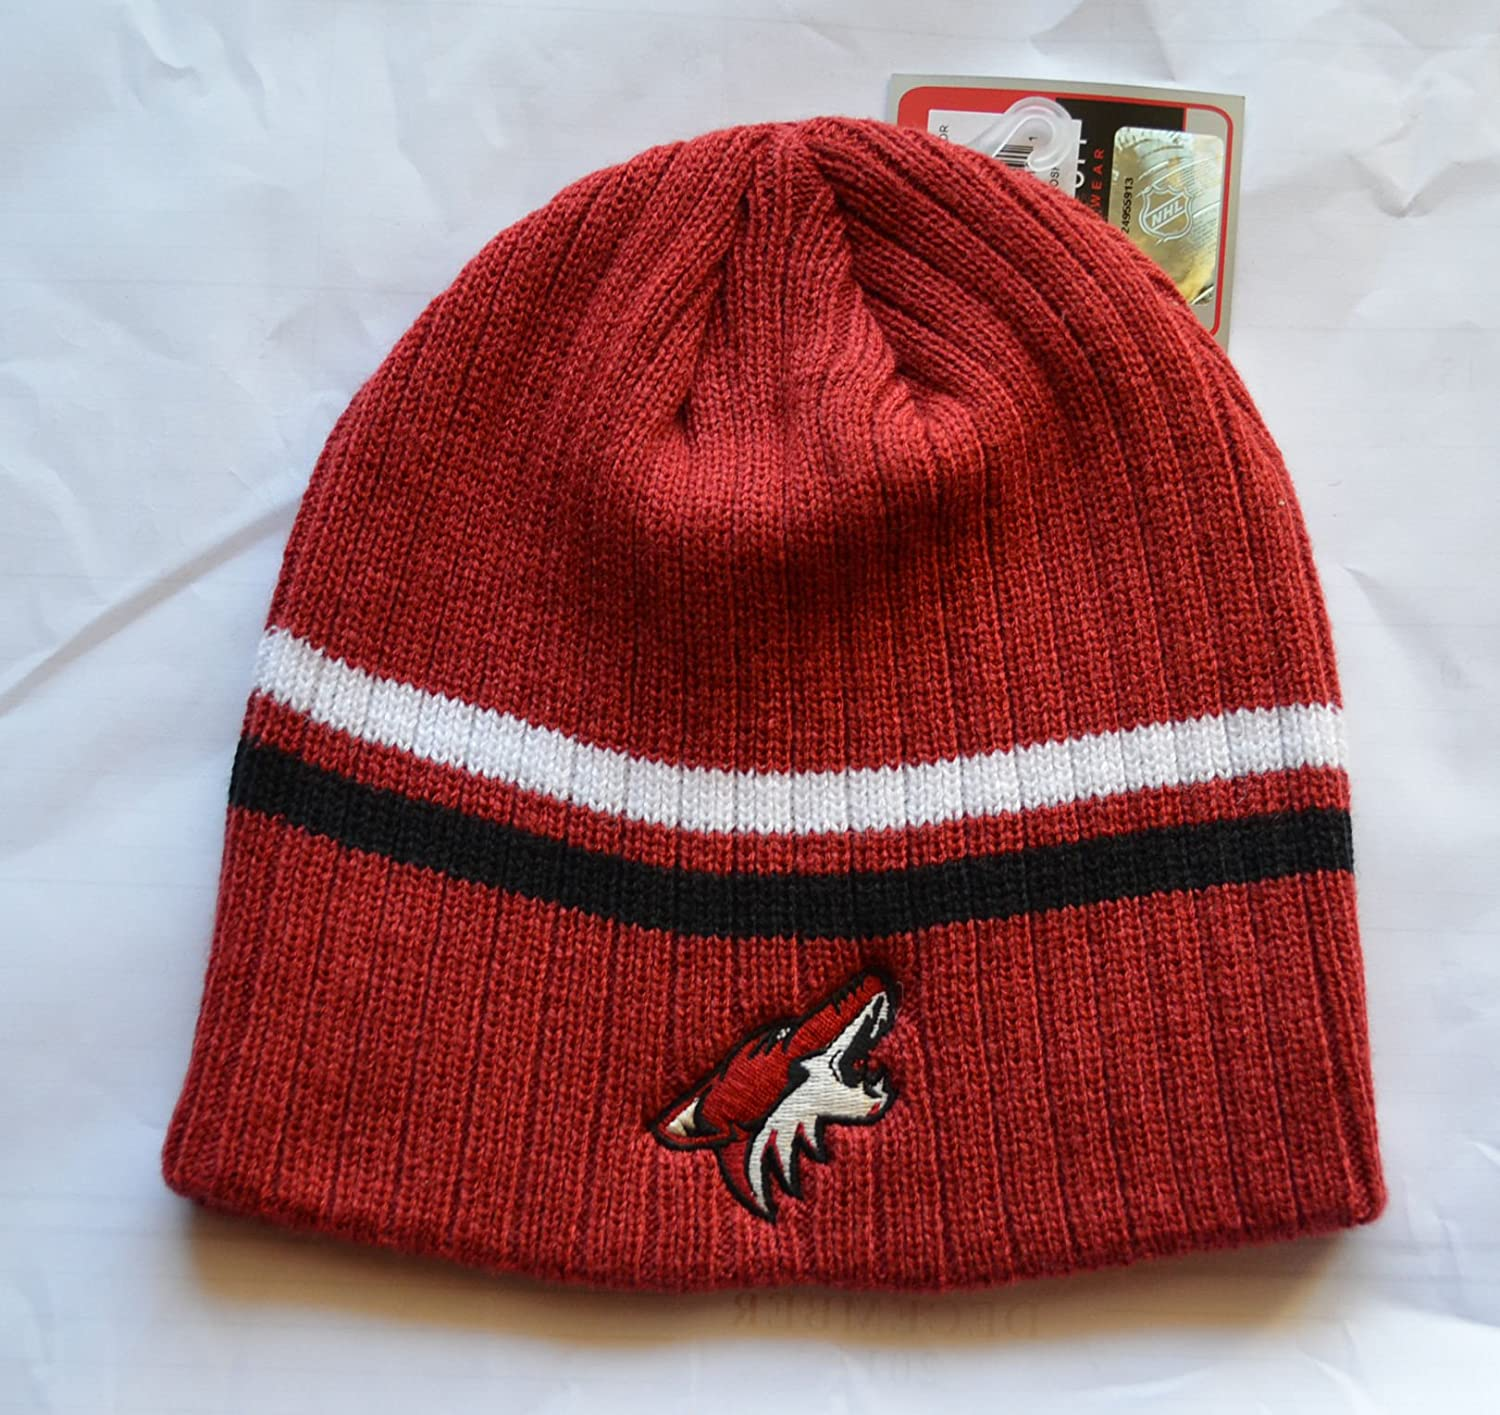 f327e9e2eac Phoenix Coyotes Reebok Face Off Skull Cap - NHL Cuffless Beanie Knit Hat   Amazon.co.uk  Sports   Outdoors